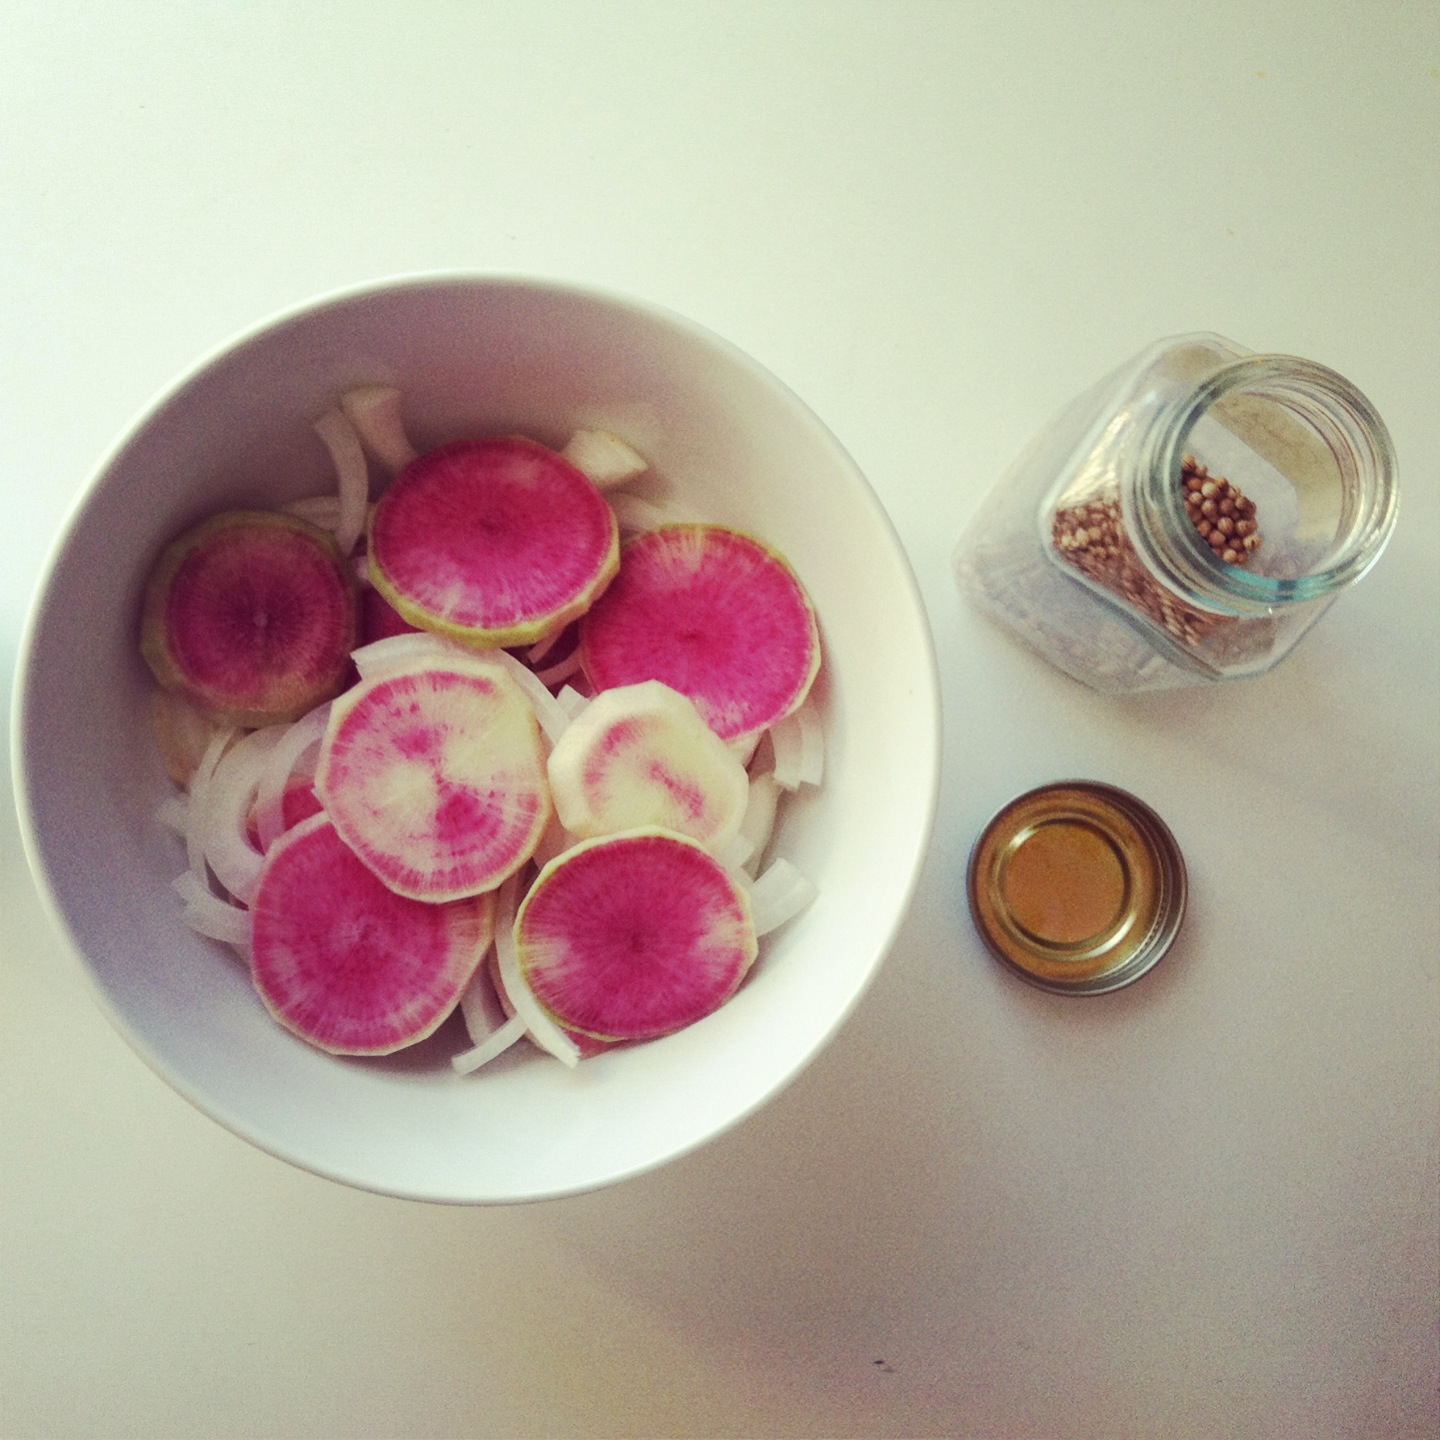 Radishes and onion slices with coriander seeds..